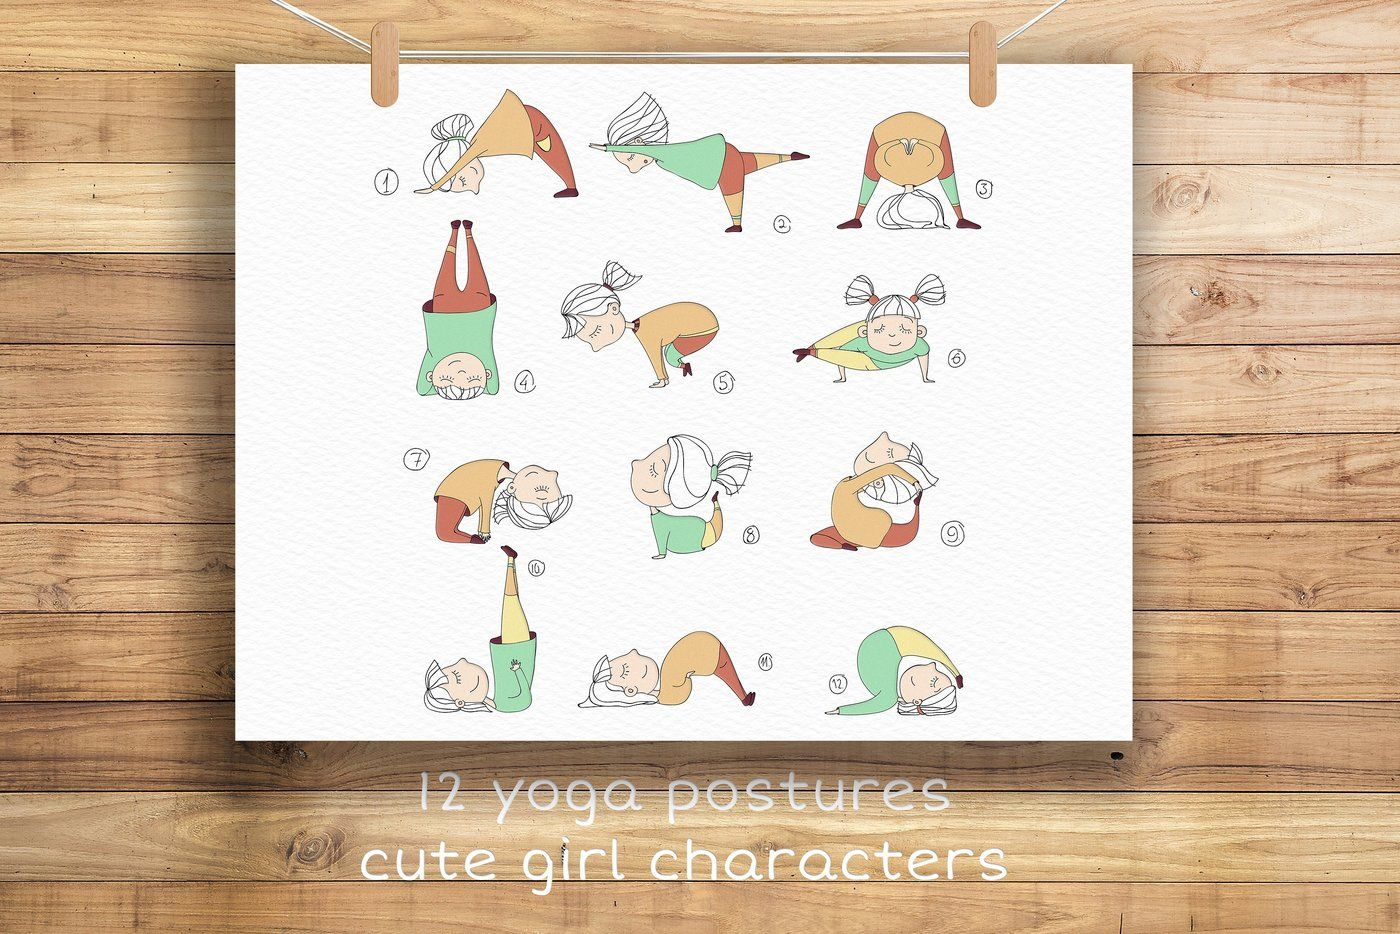 Yoga Poses With Cute Girl Character By Carrotdesign